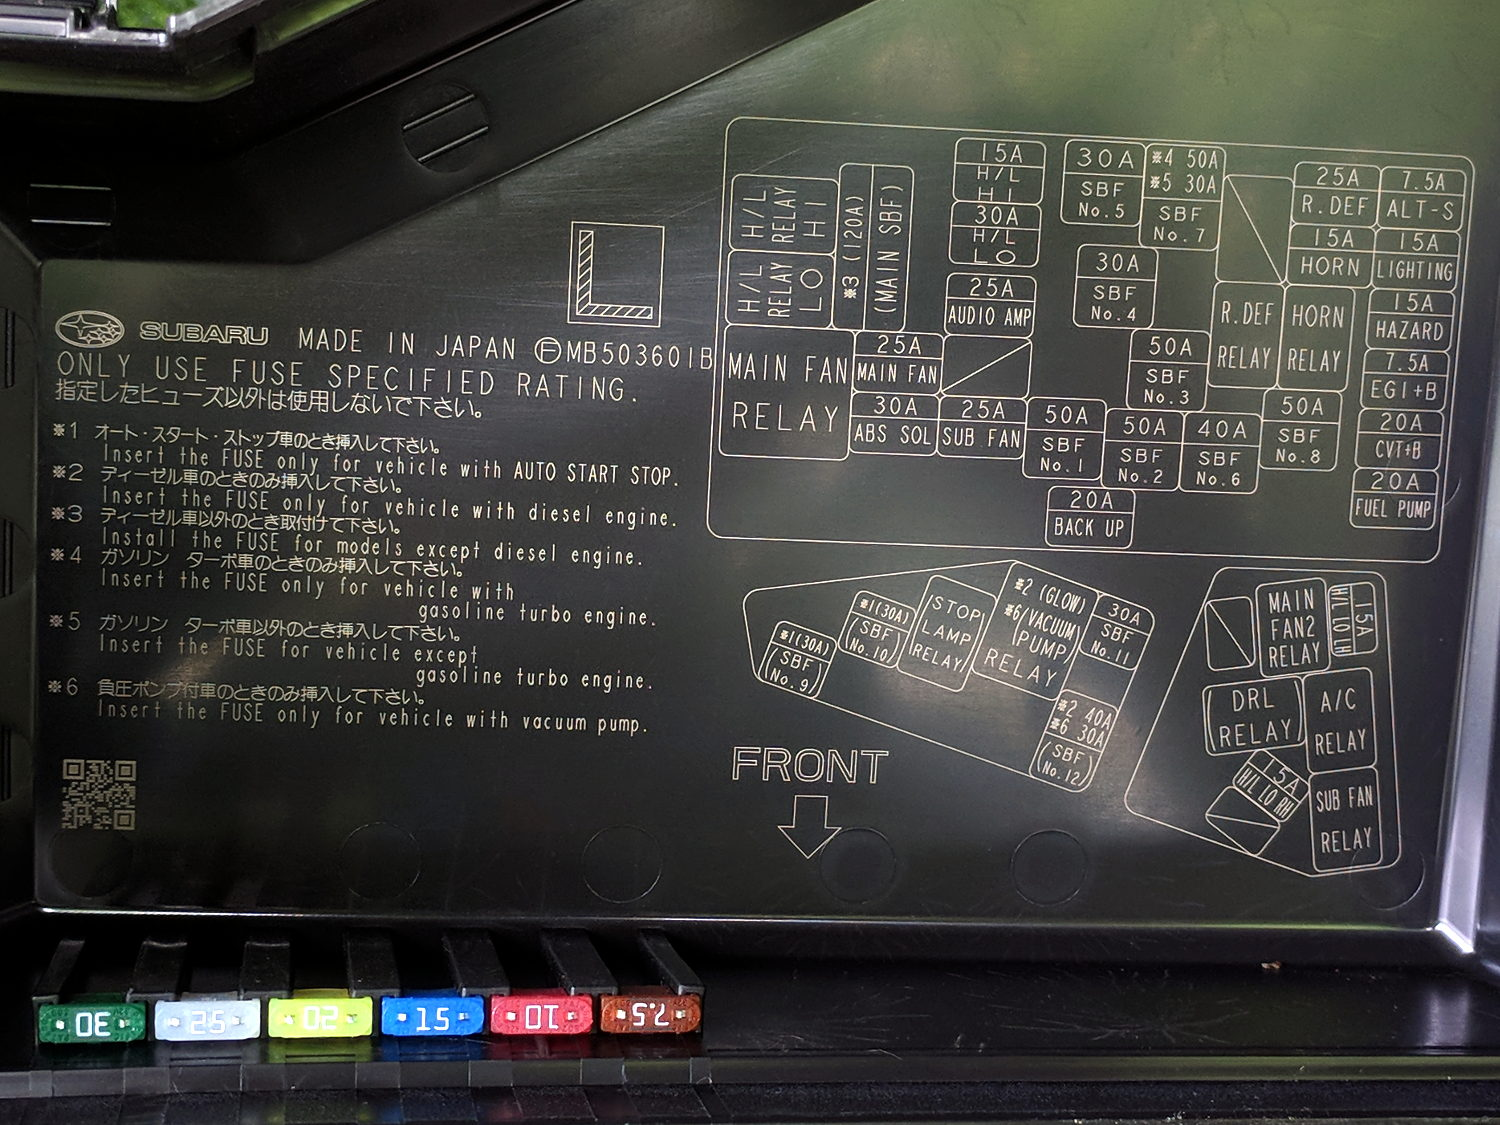 2015 subaru forester - engine compartment fuse id